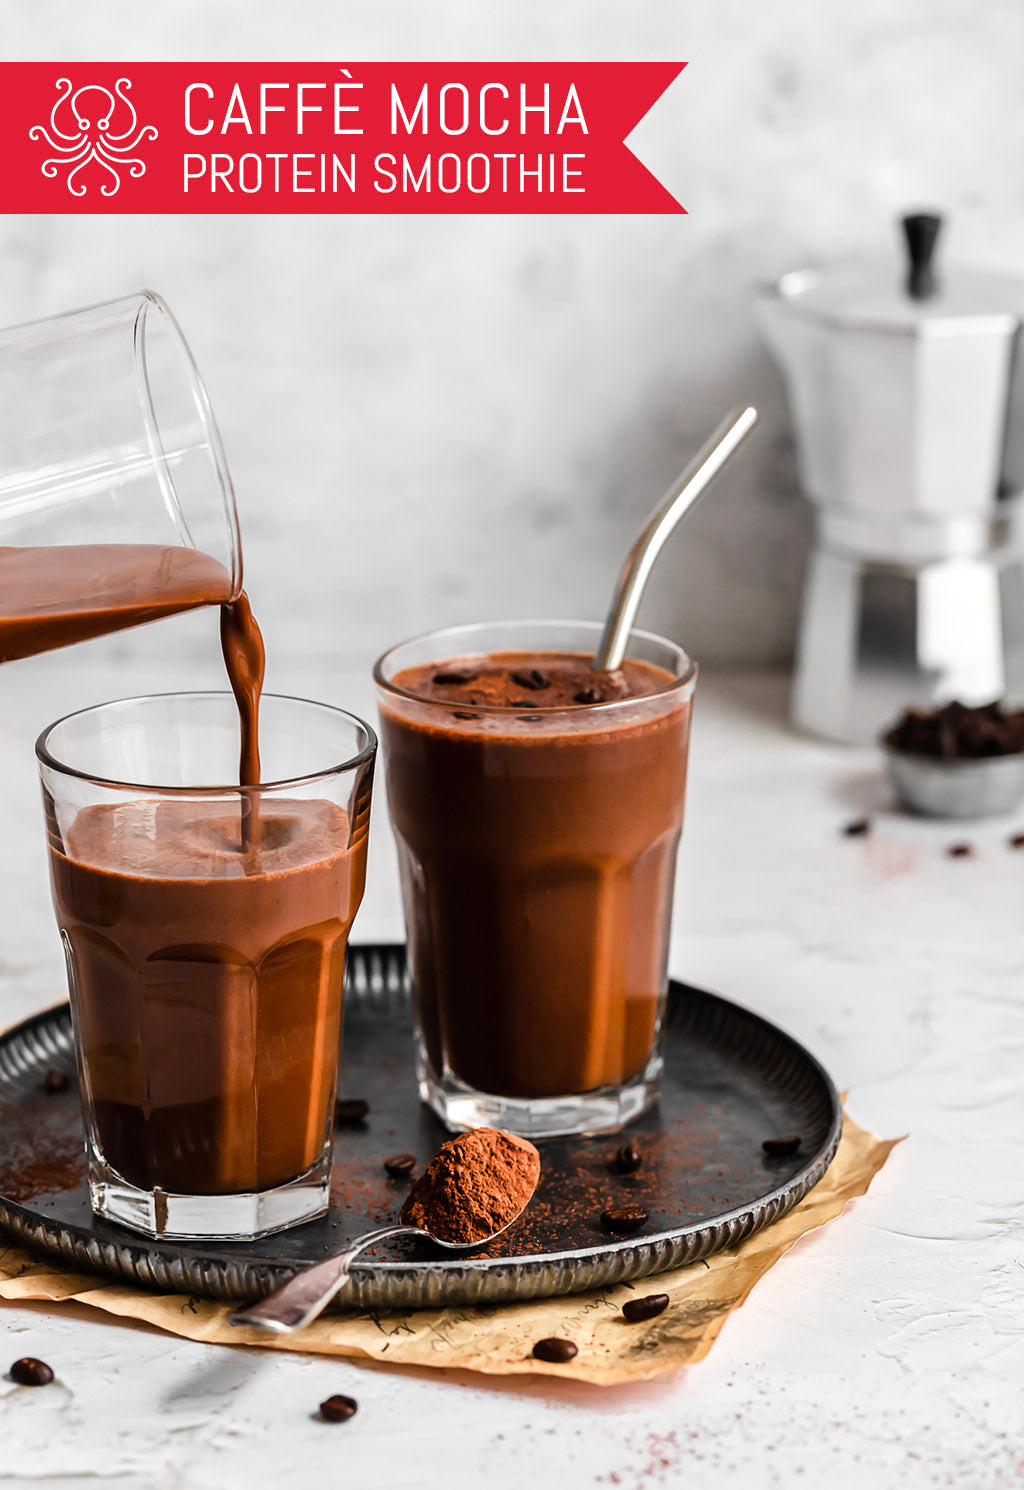 Caffè Mocha Protein Smoothie: A Better-for-You Frappuccino